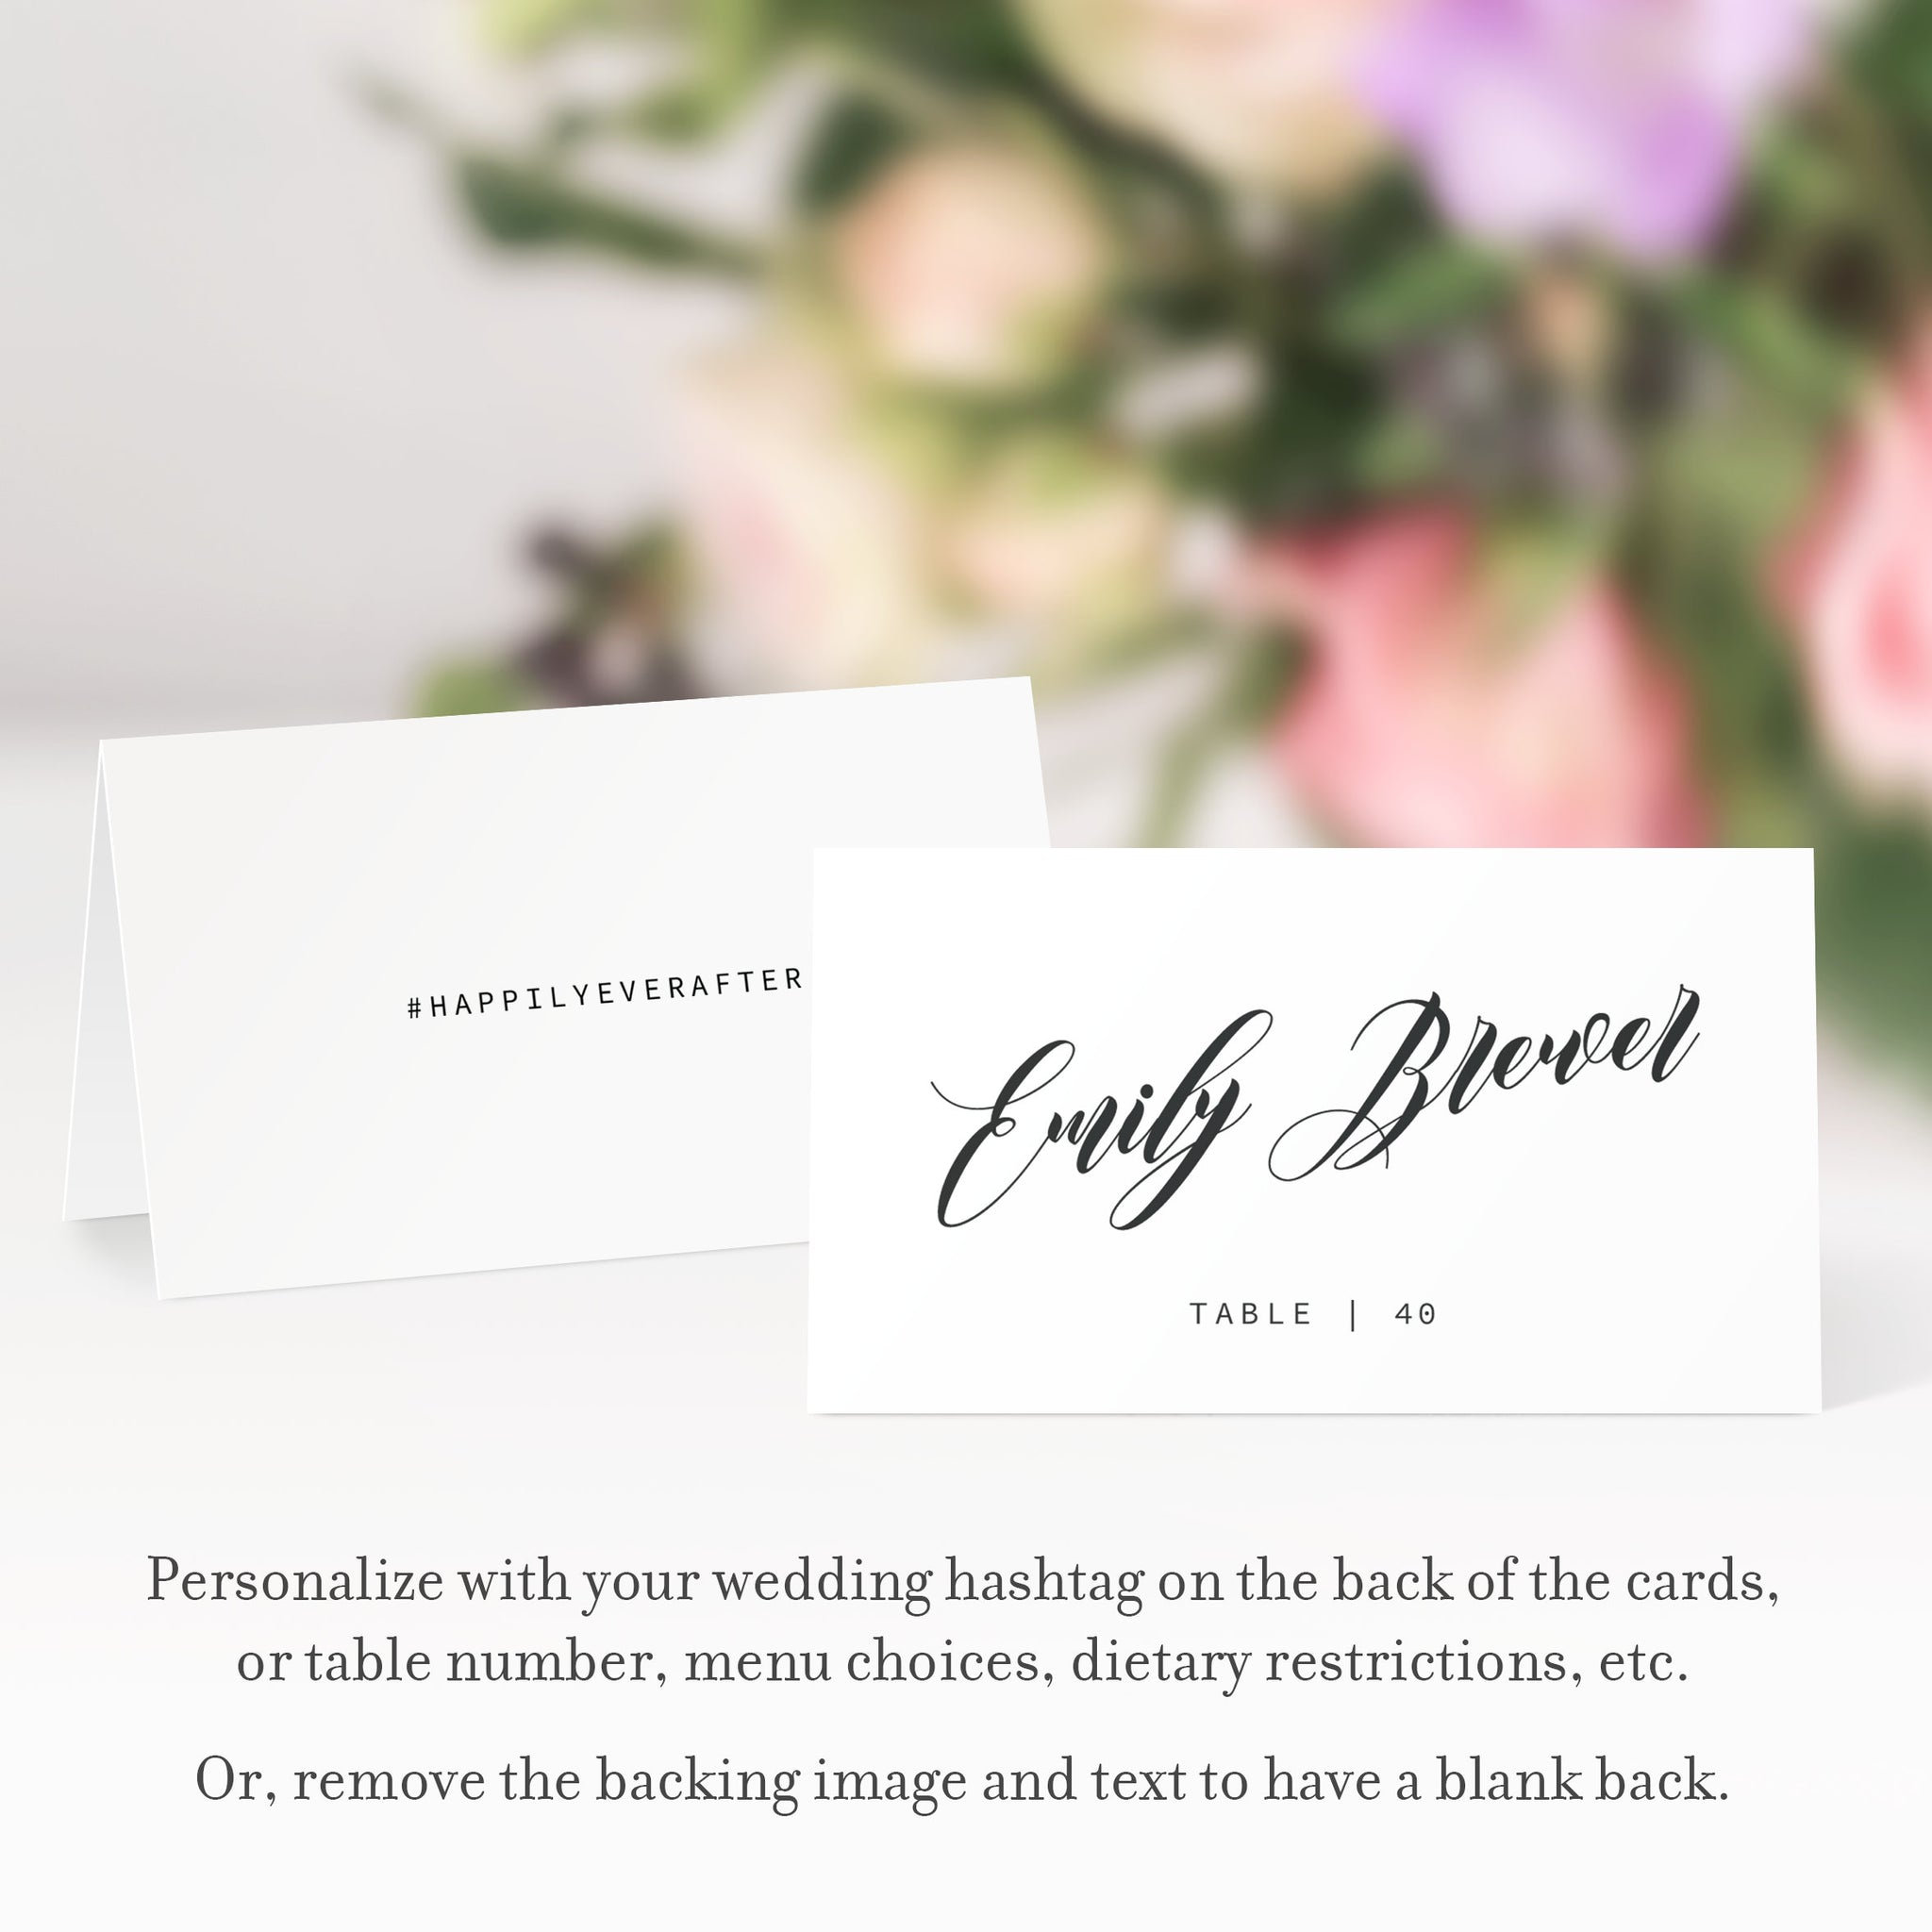 Black Script Wedding Place Cards Template, Personalized Wedding Name Cards, Printable Place Cards, DIGITAL DOWNLOAD - SFB100 - @PlumPolkaDot